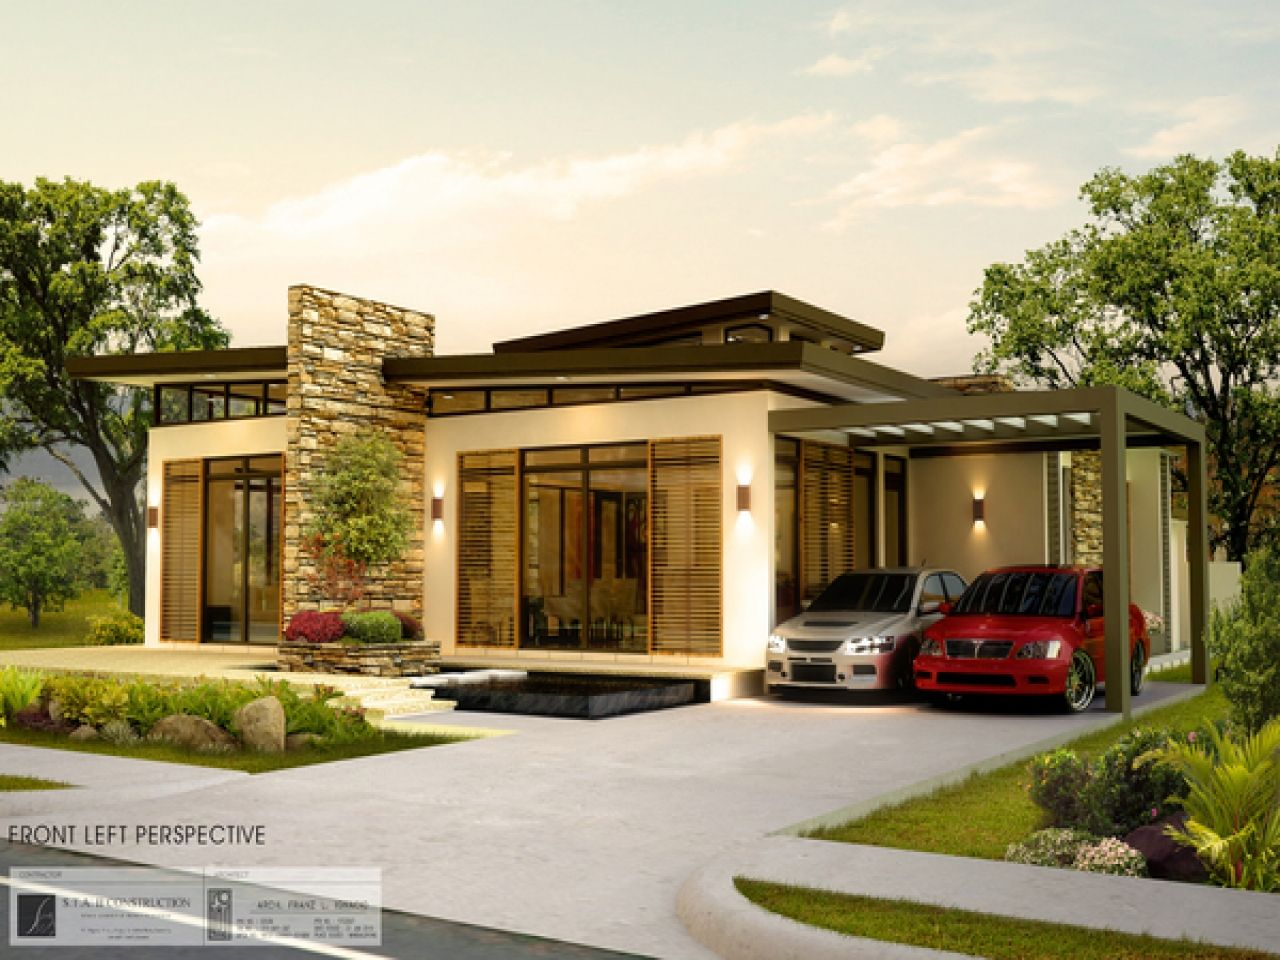 Exquisit Moderne Bungalows Foto Von Designs Modern Bungalow E Philippines New Design